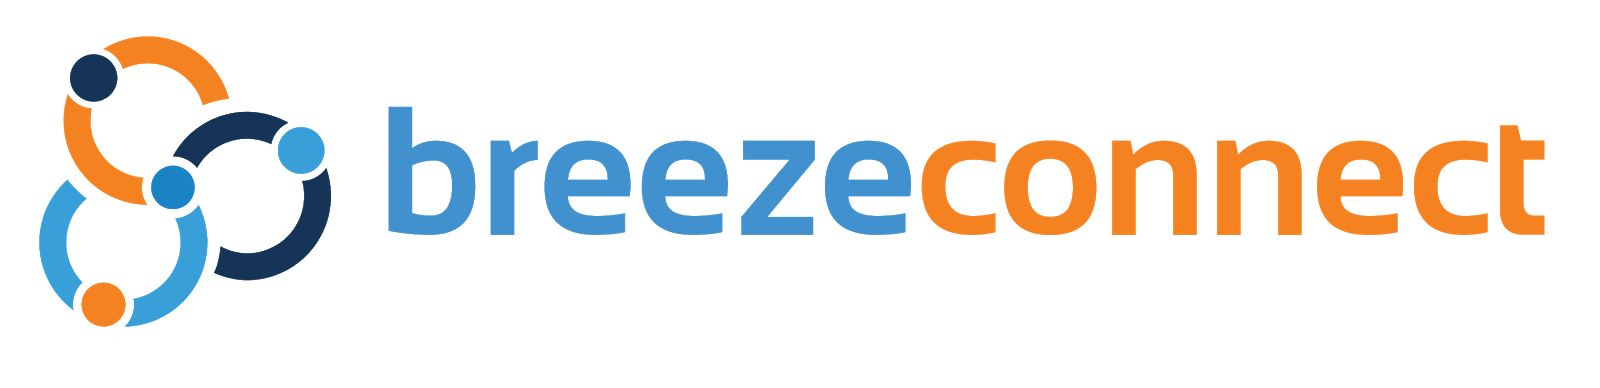 Breeze Connect.png